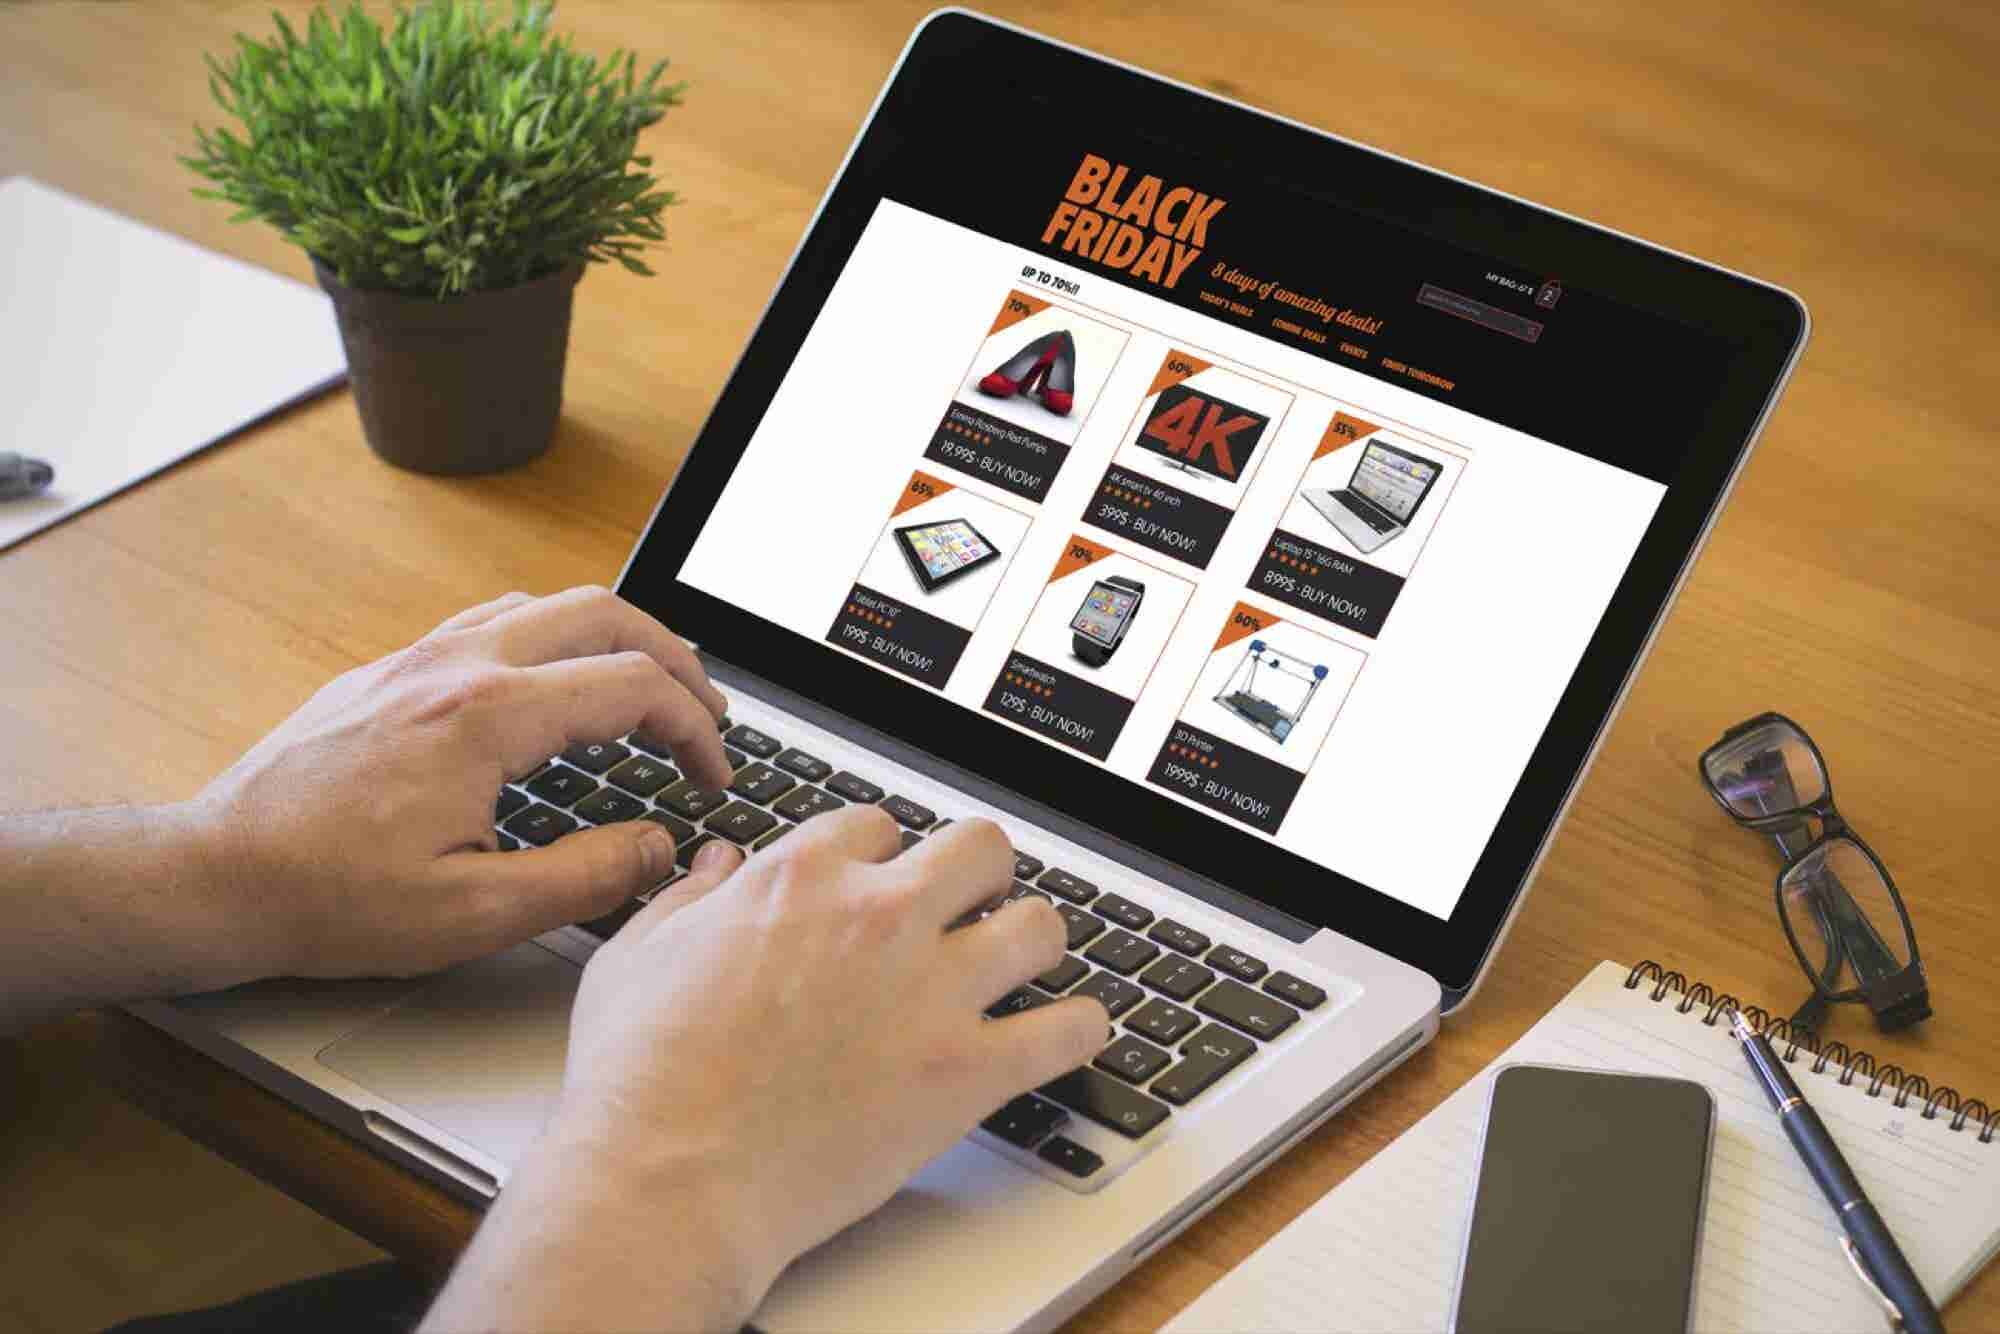 Omnichannel or Multichannel: What's the Future of Retail in India?